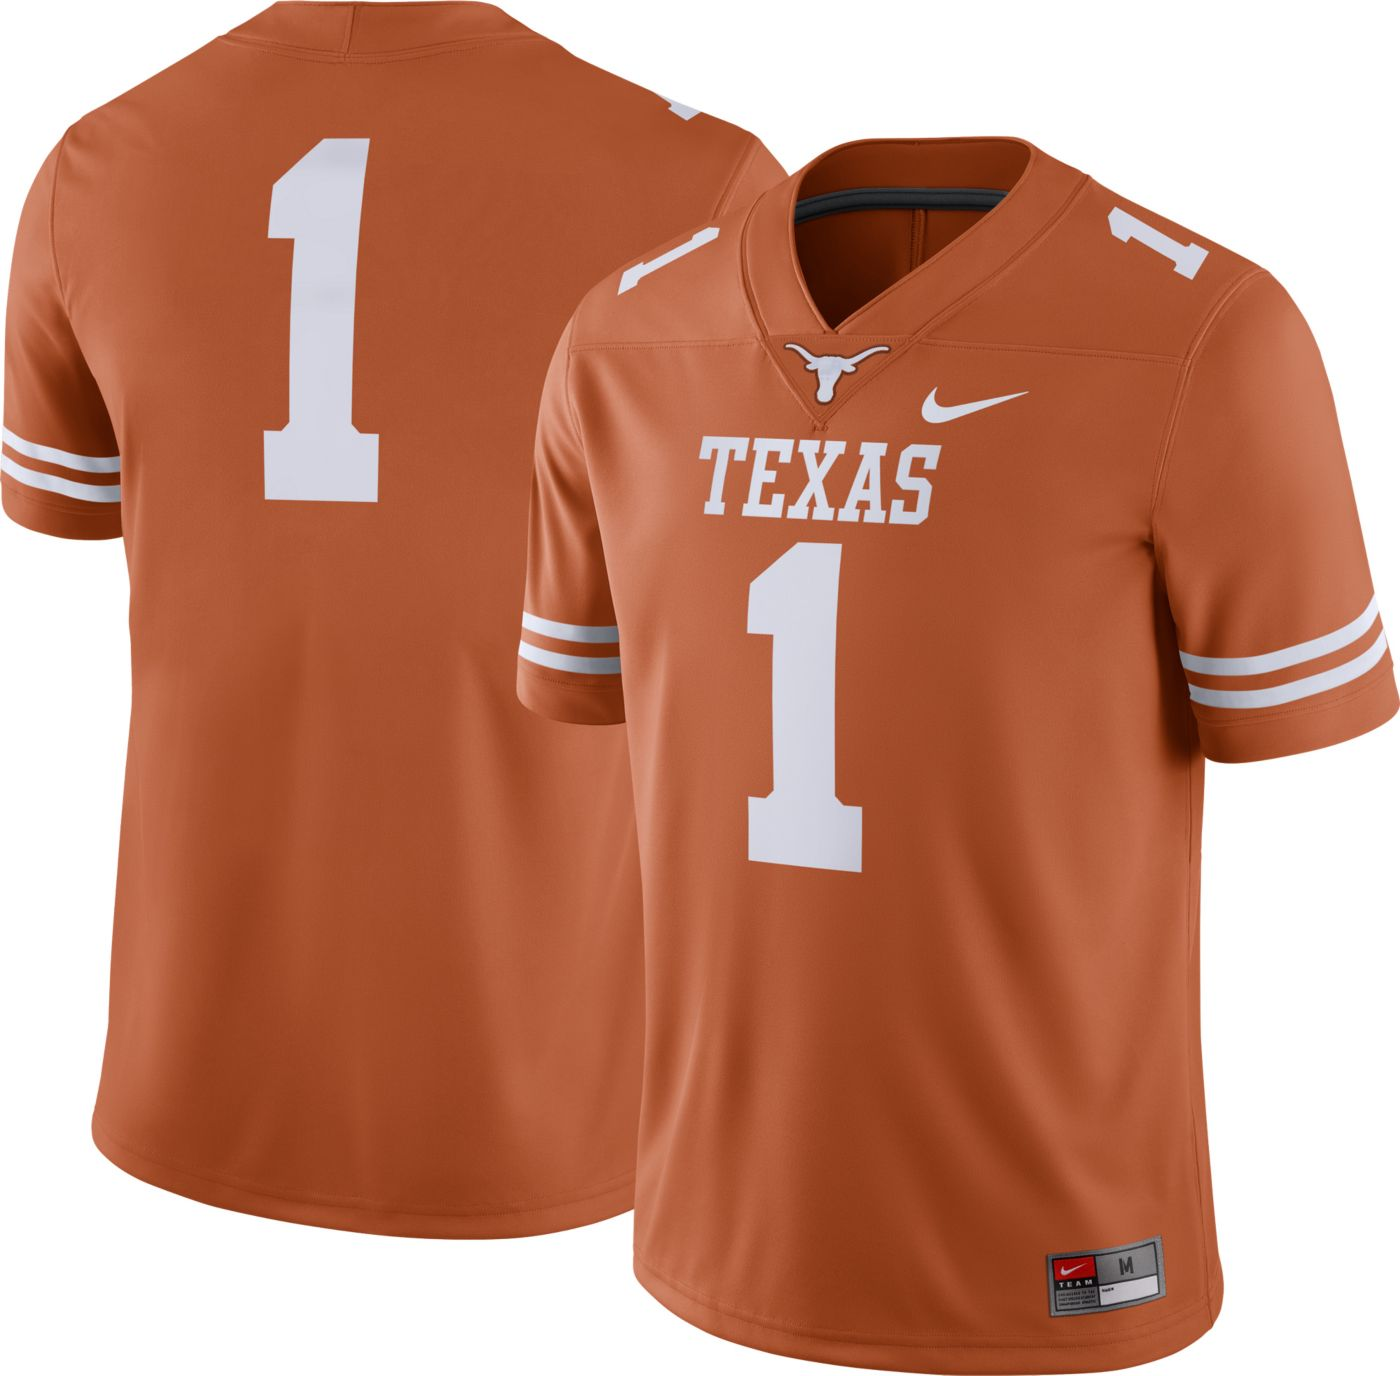 Nike Men's Texas Longhorns #1 Burnt Orange Dri-FIT Game Football Jersey